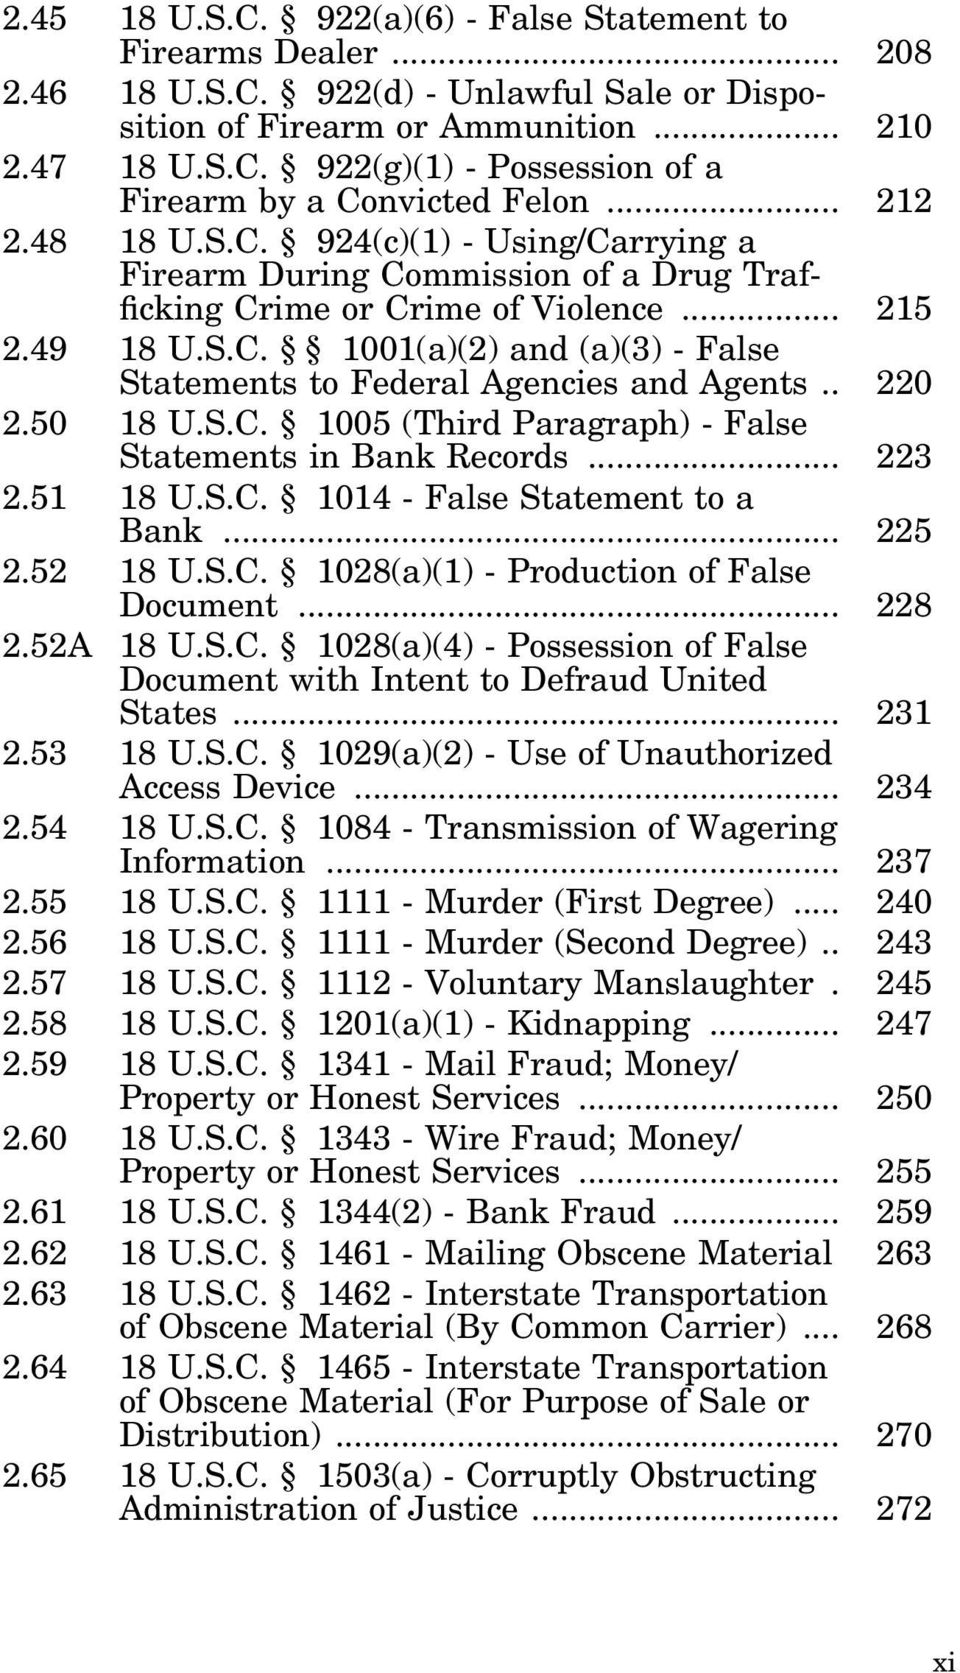 . 220 2.50 18 U.S.C. 1005 (Third Paragraph) - False Statements in Bank Records... 223 2.51 18 U.S.C. 1014 - False Statement to a Bank... 225 2.52 18 U.S.C. 1028(a)(1) - Production of False Document.